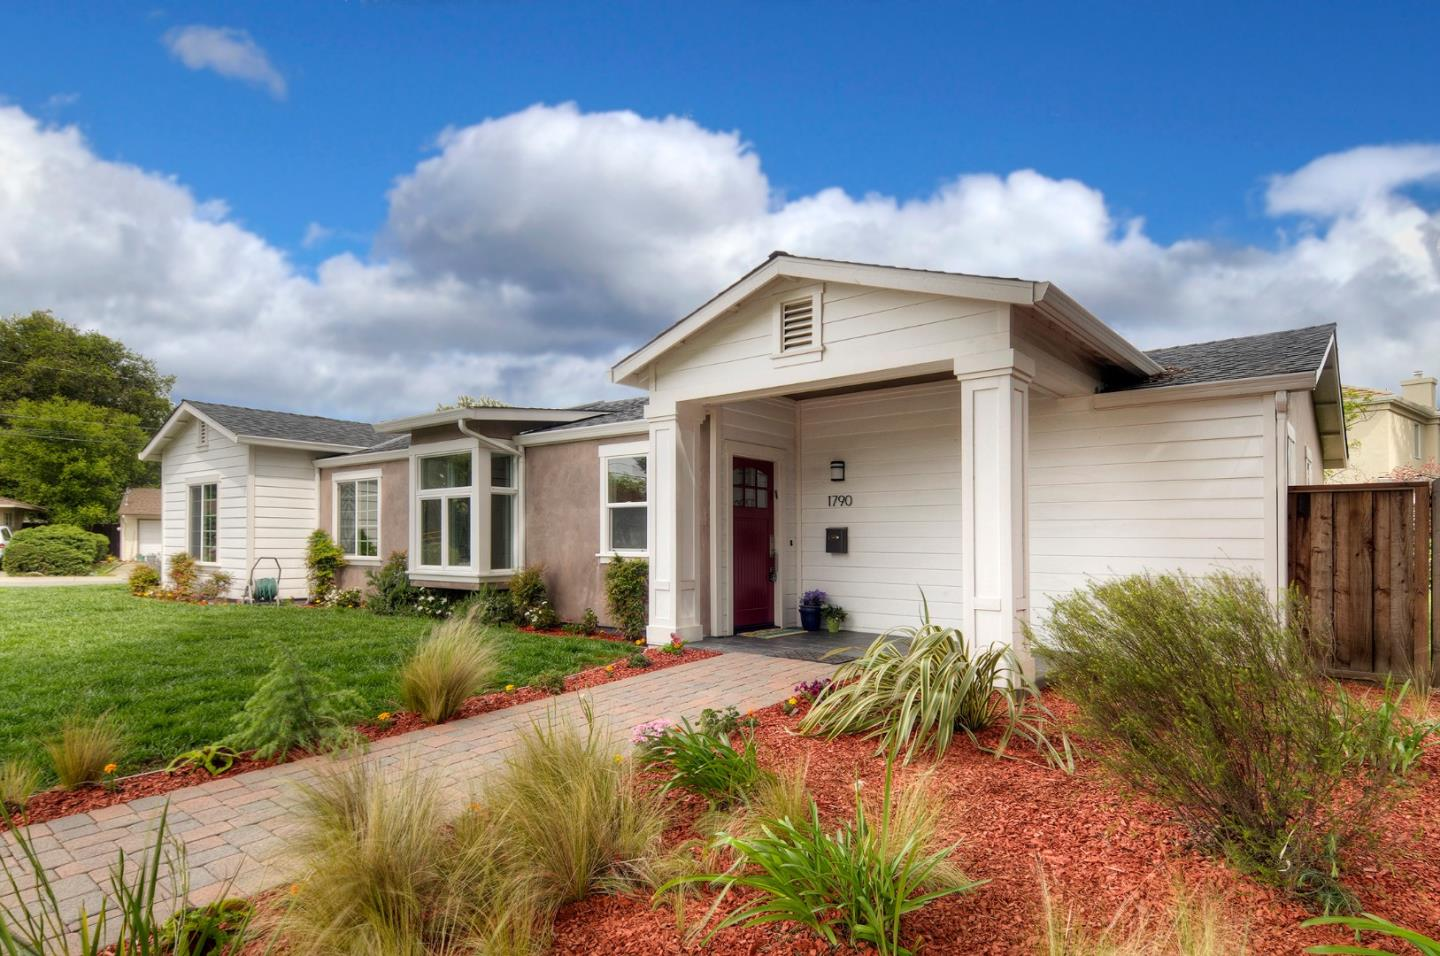 Single Family Home for Sale at 1790 Pilgrim Avenue 1790 Pilgrim Avenue Mountain View, California 94040 United States